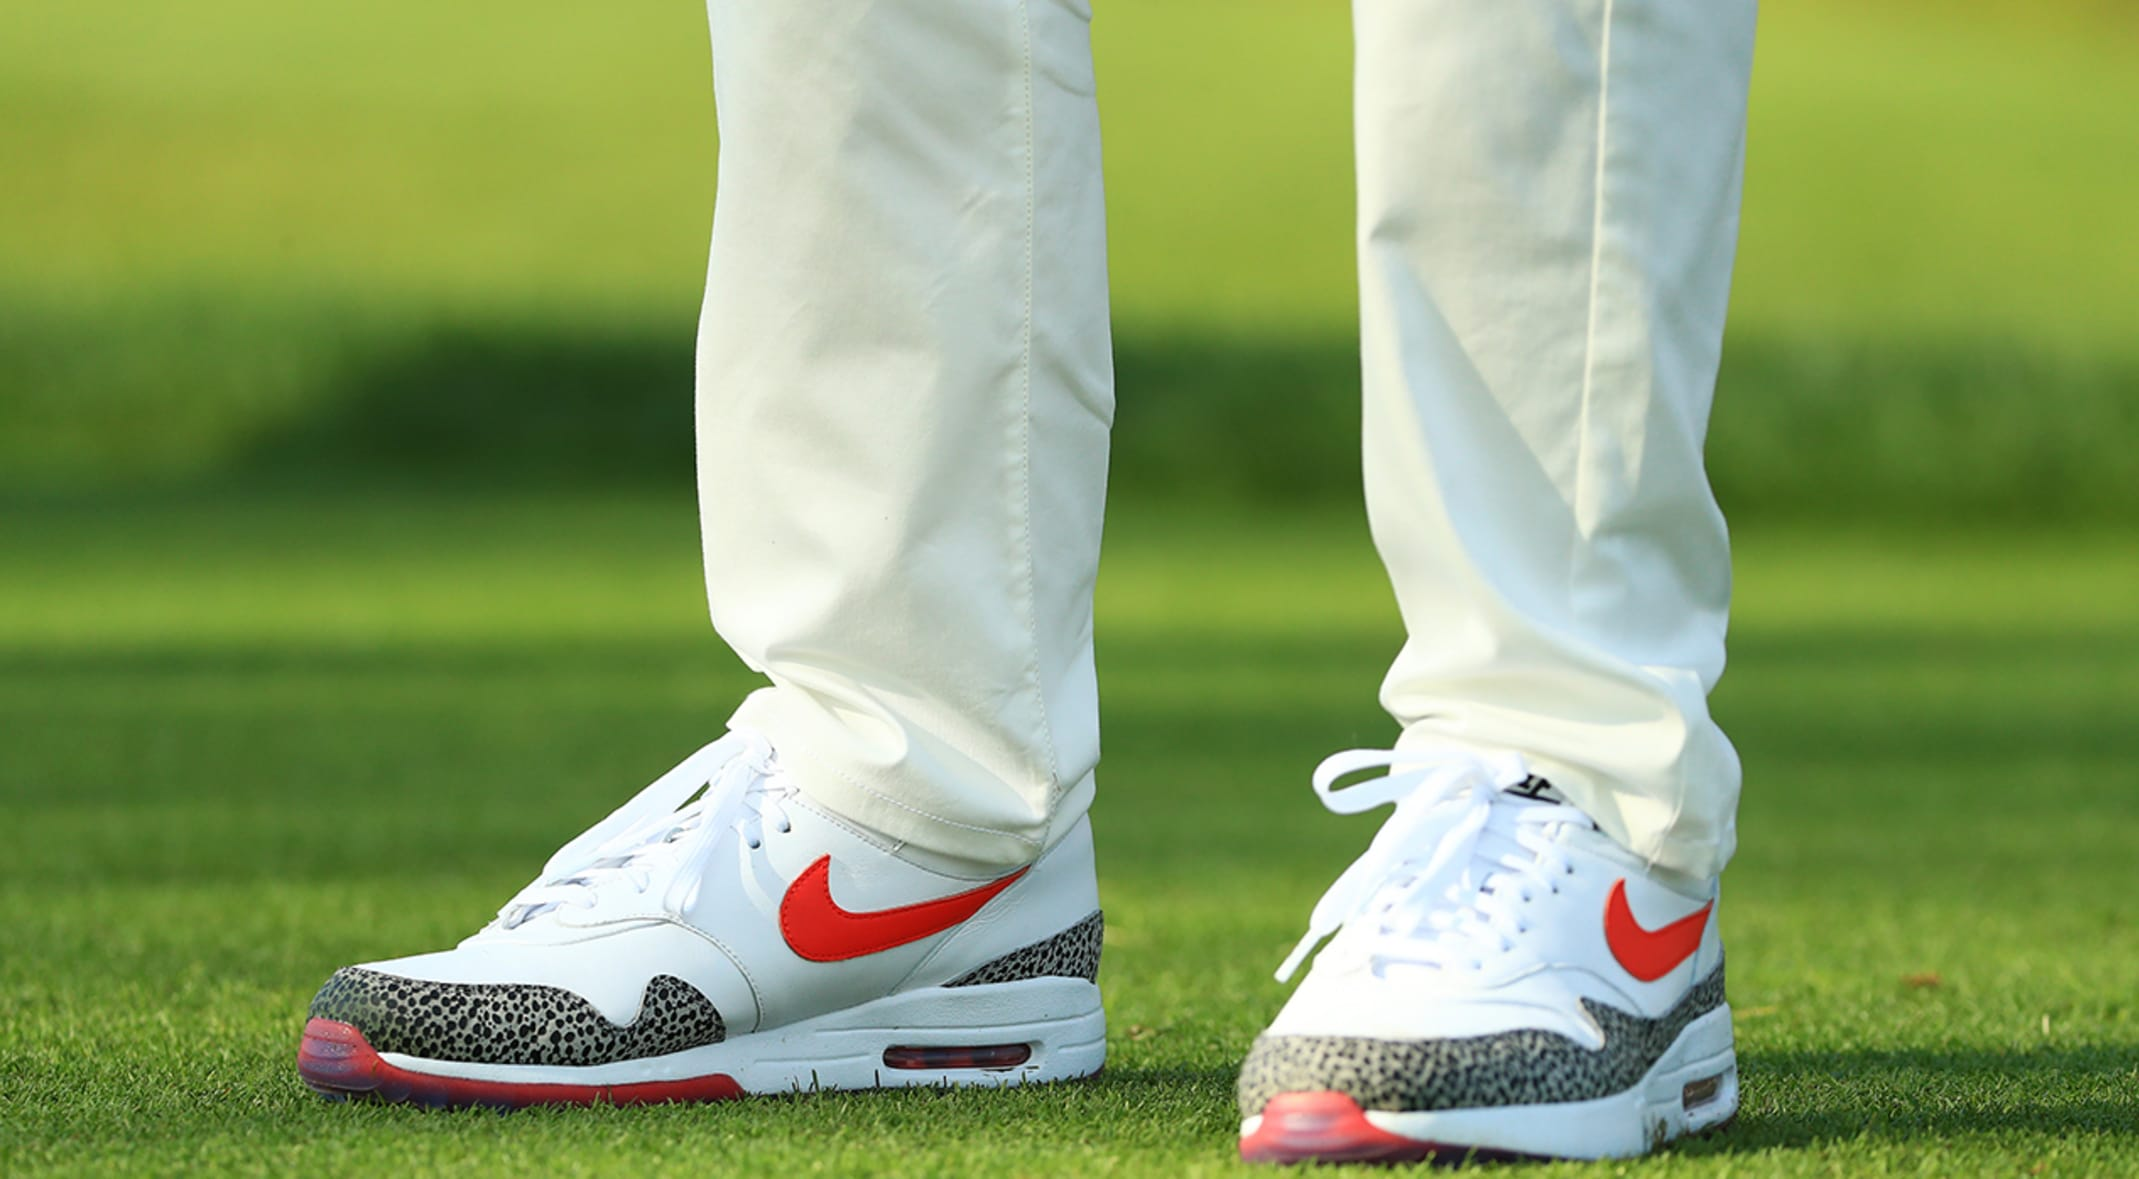 Nike Air Max 1G Men's Golf Shoe White Produkter 2019  Products in 2019